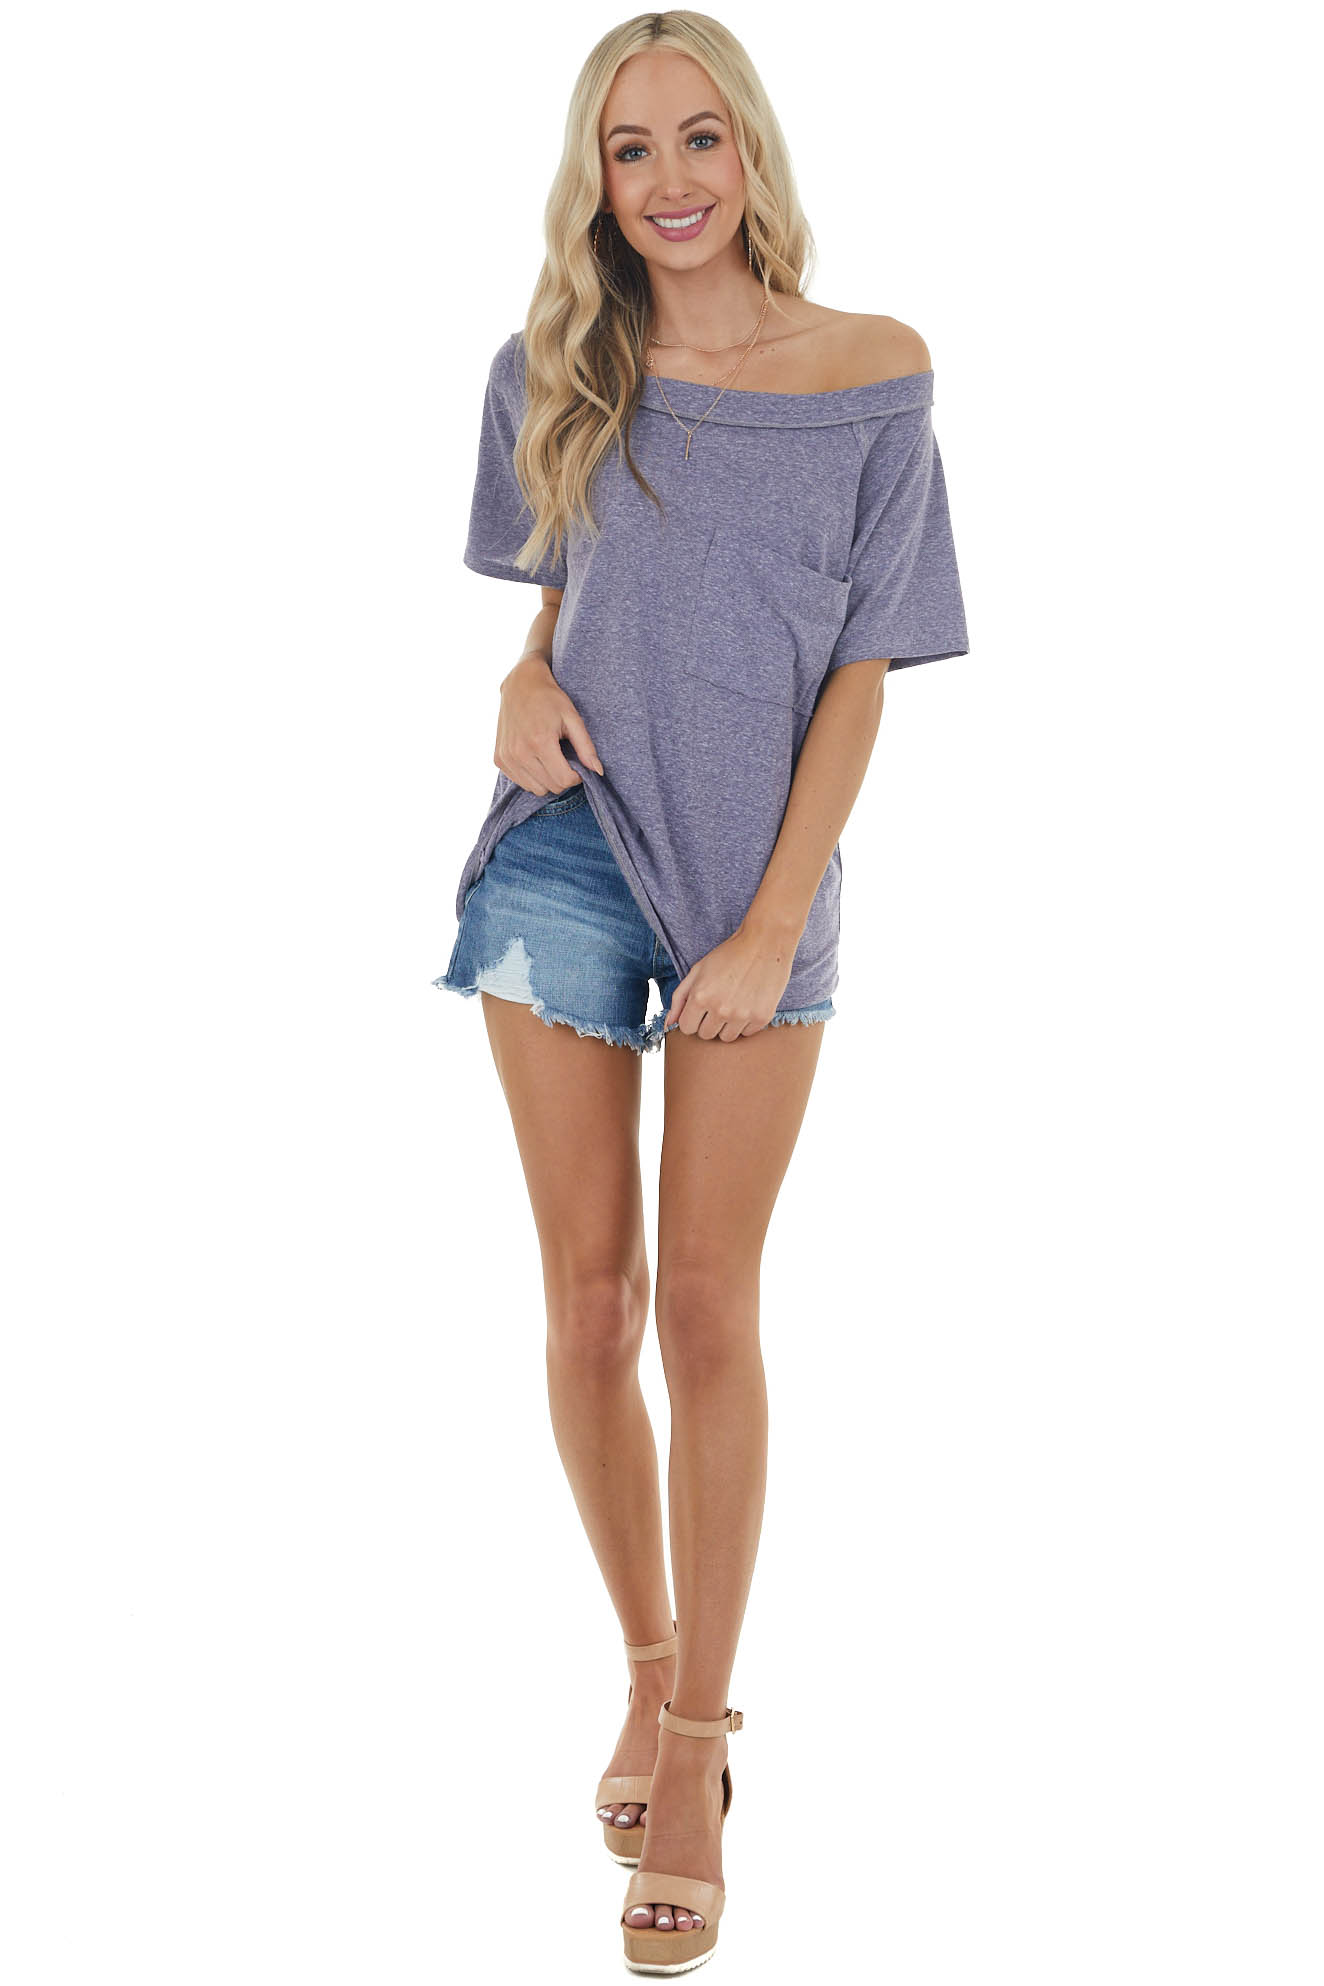 Dusty Blue Two Tone Short Sleeve Knit Top with Raw Details